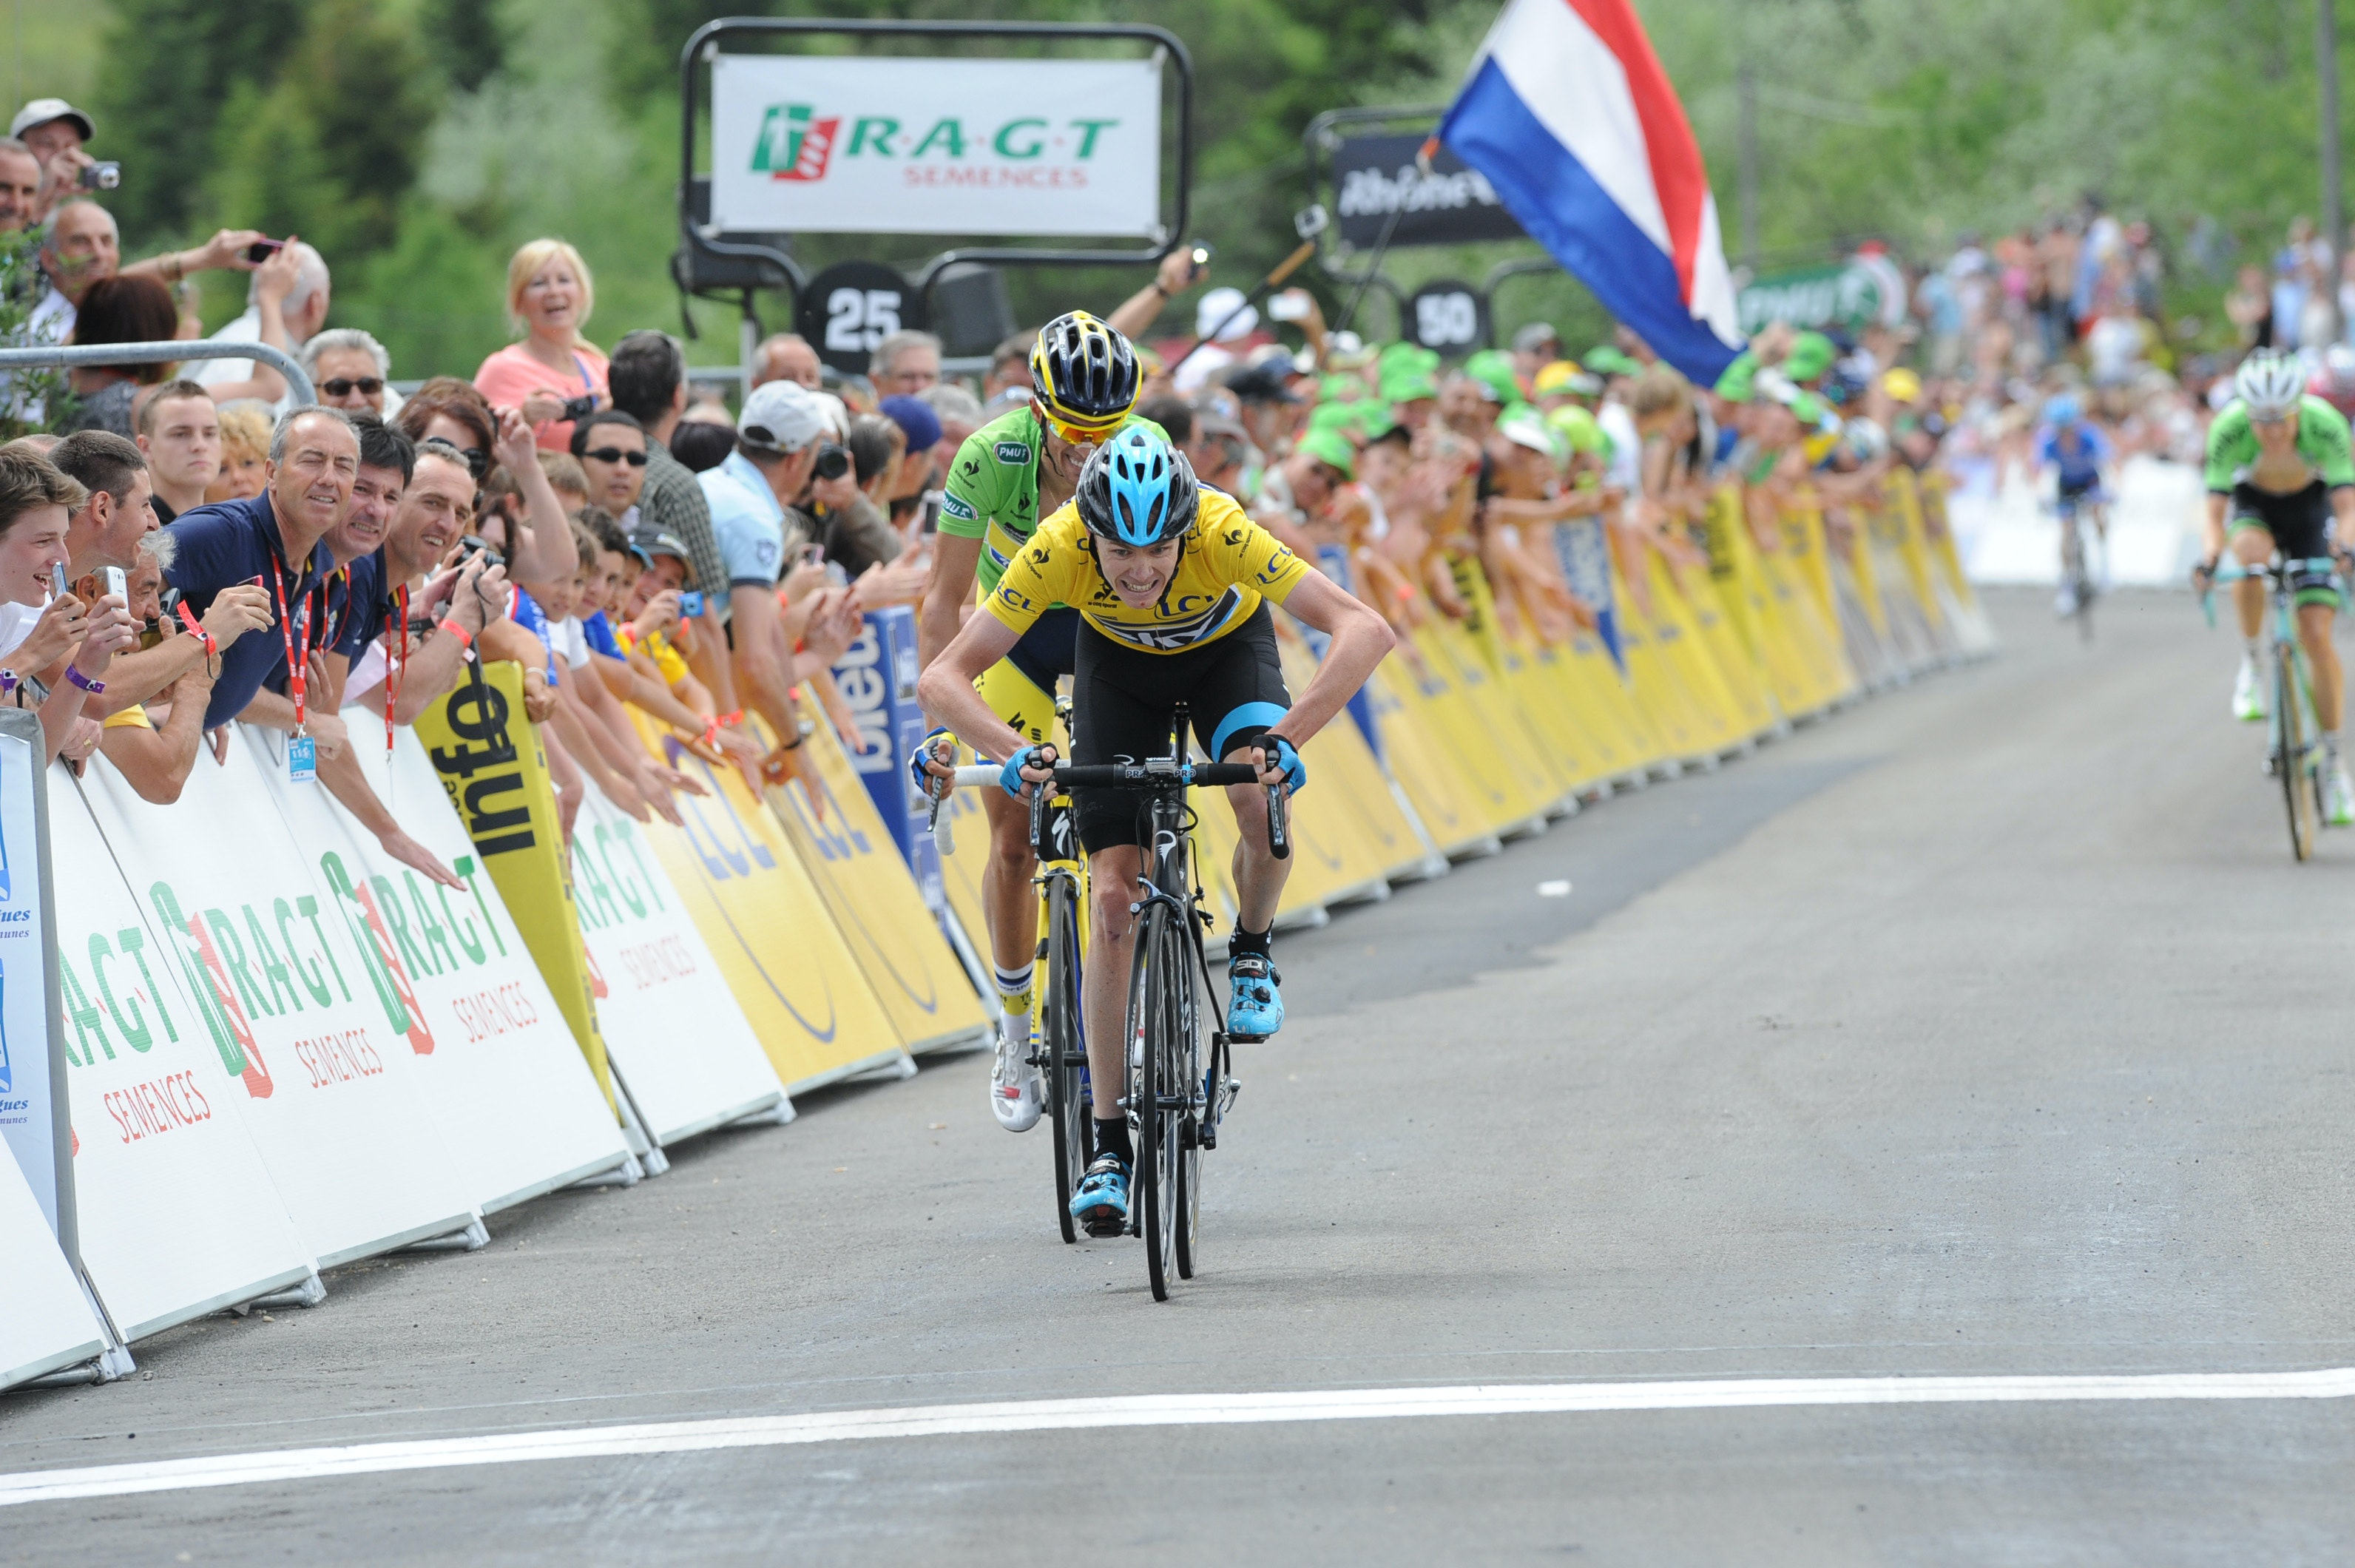 Chris Froome, Team Sky, yellow jersey, sprint, throw, Criterium du Dauphine, 2014, stage two, Col du Beal, pic: Sirotti